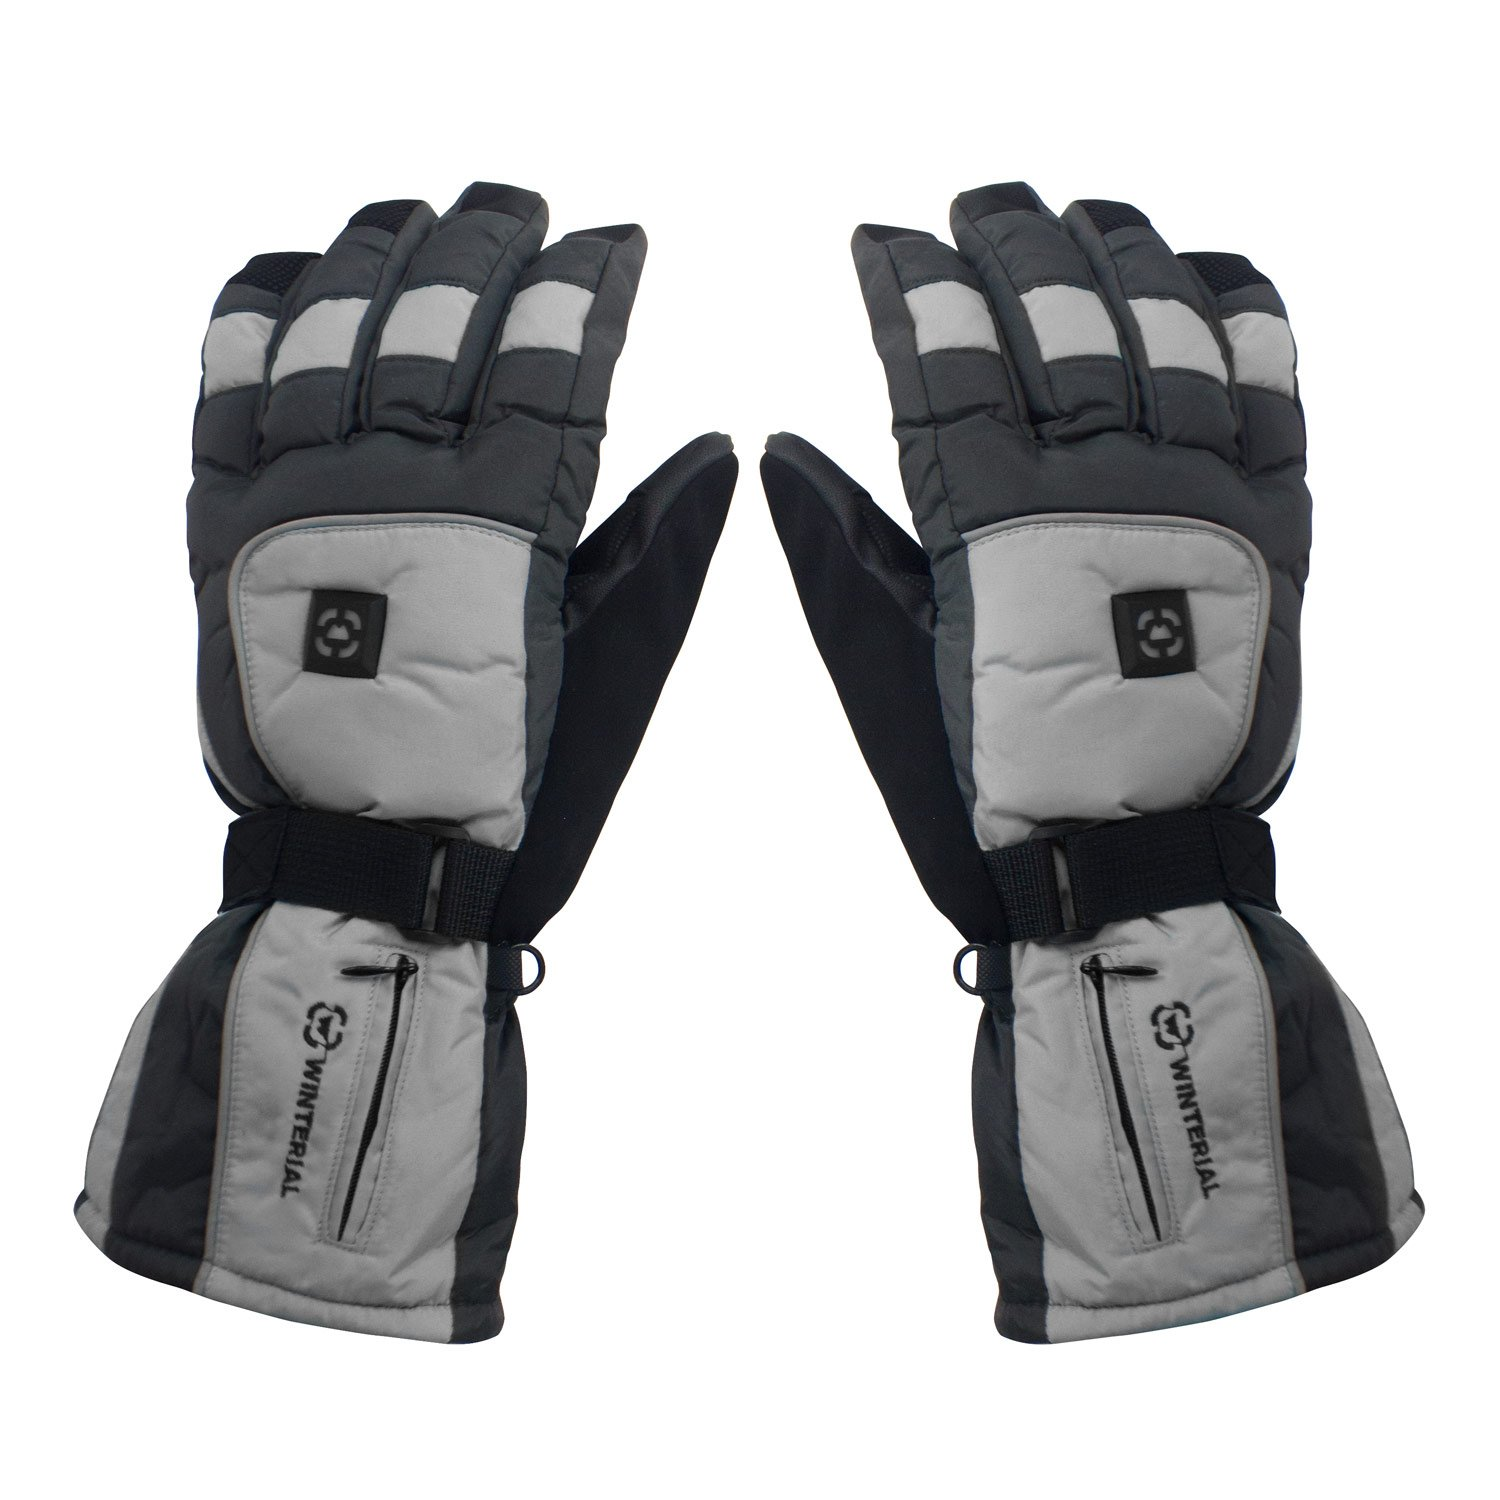 ororo Heated Gloves with Rechargeable Li-ion Battery for Men and Women 3-in-1 Warm Gloves for Hiking Skiing Motorcycle